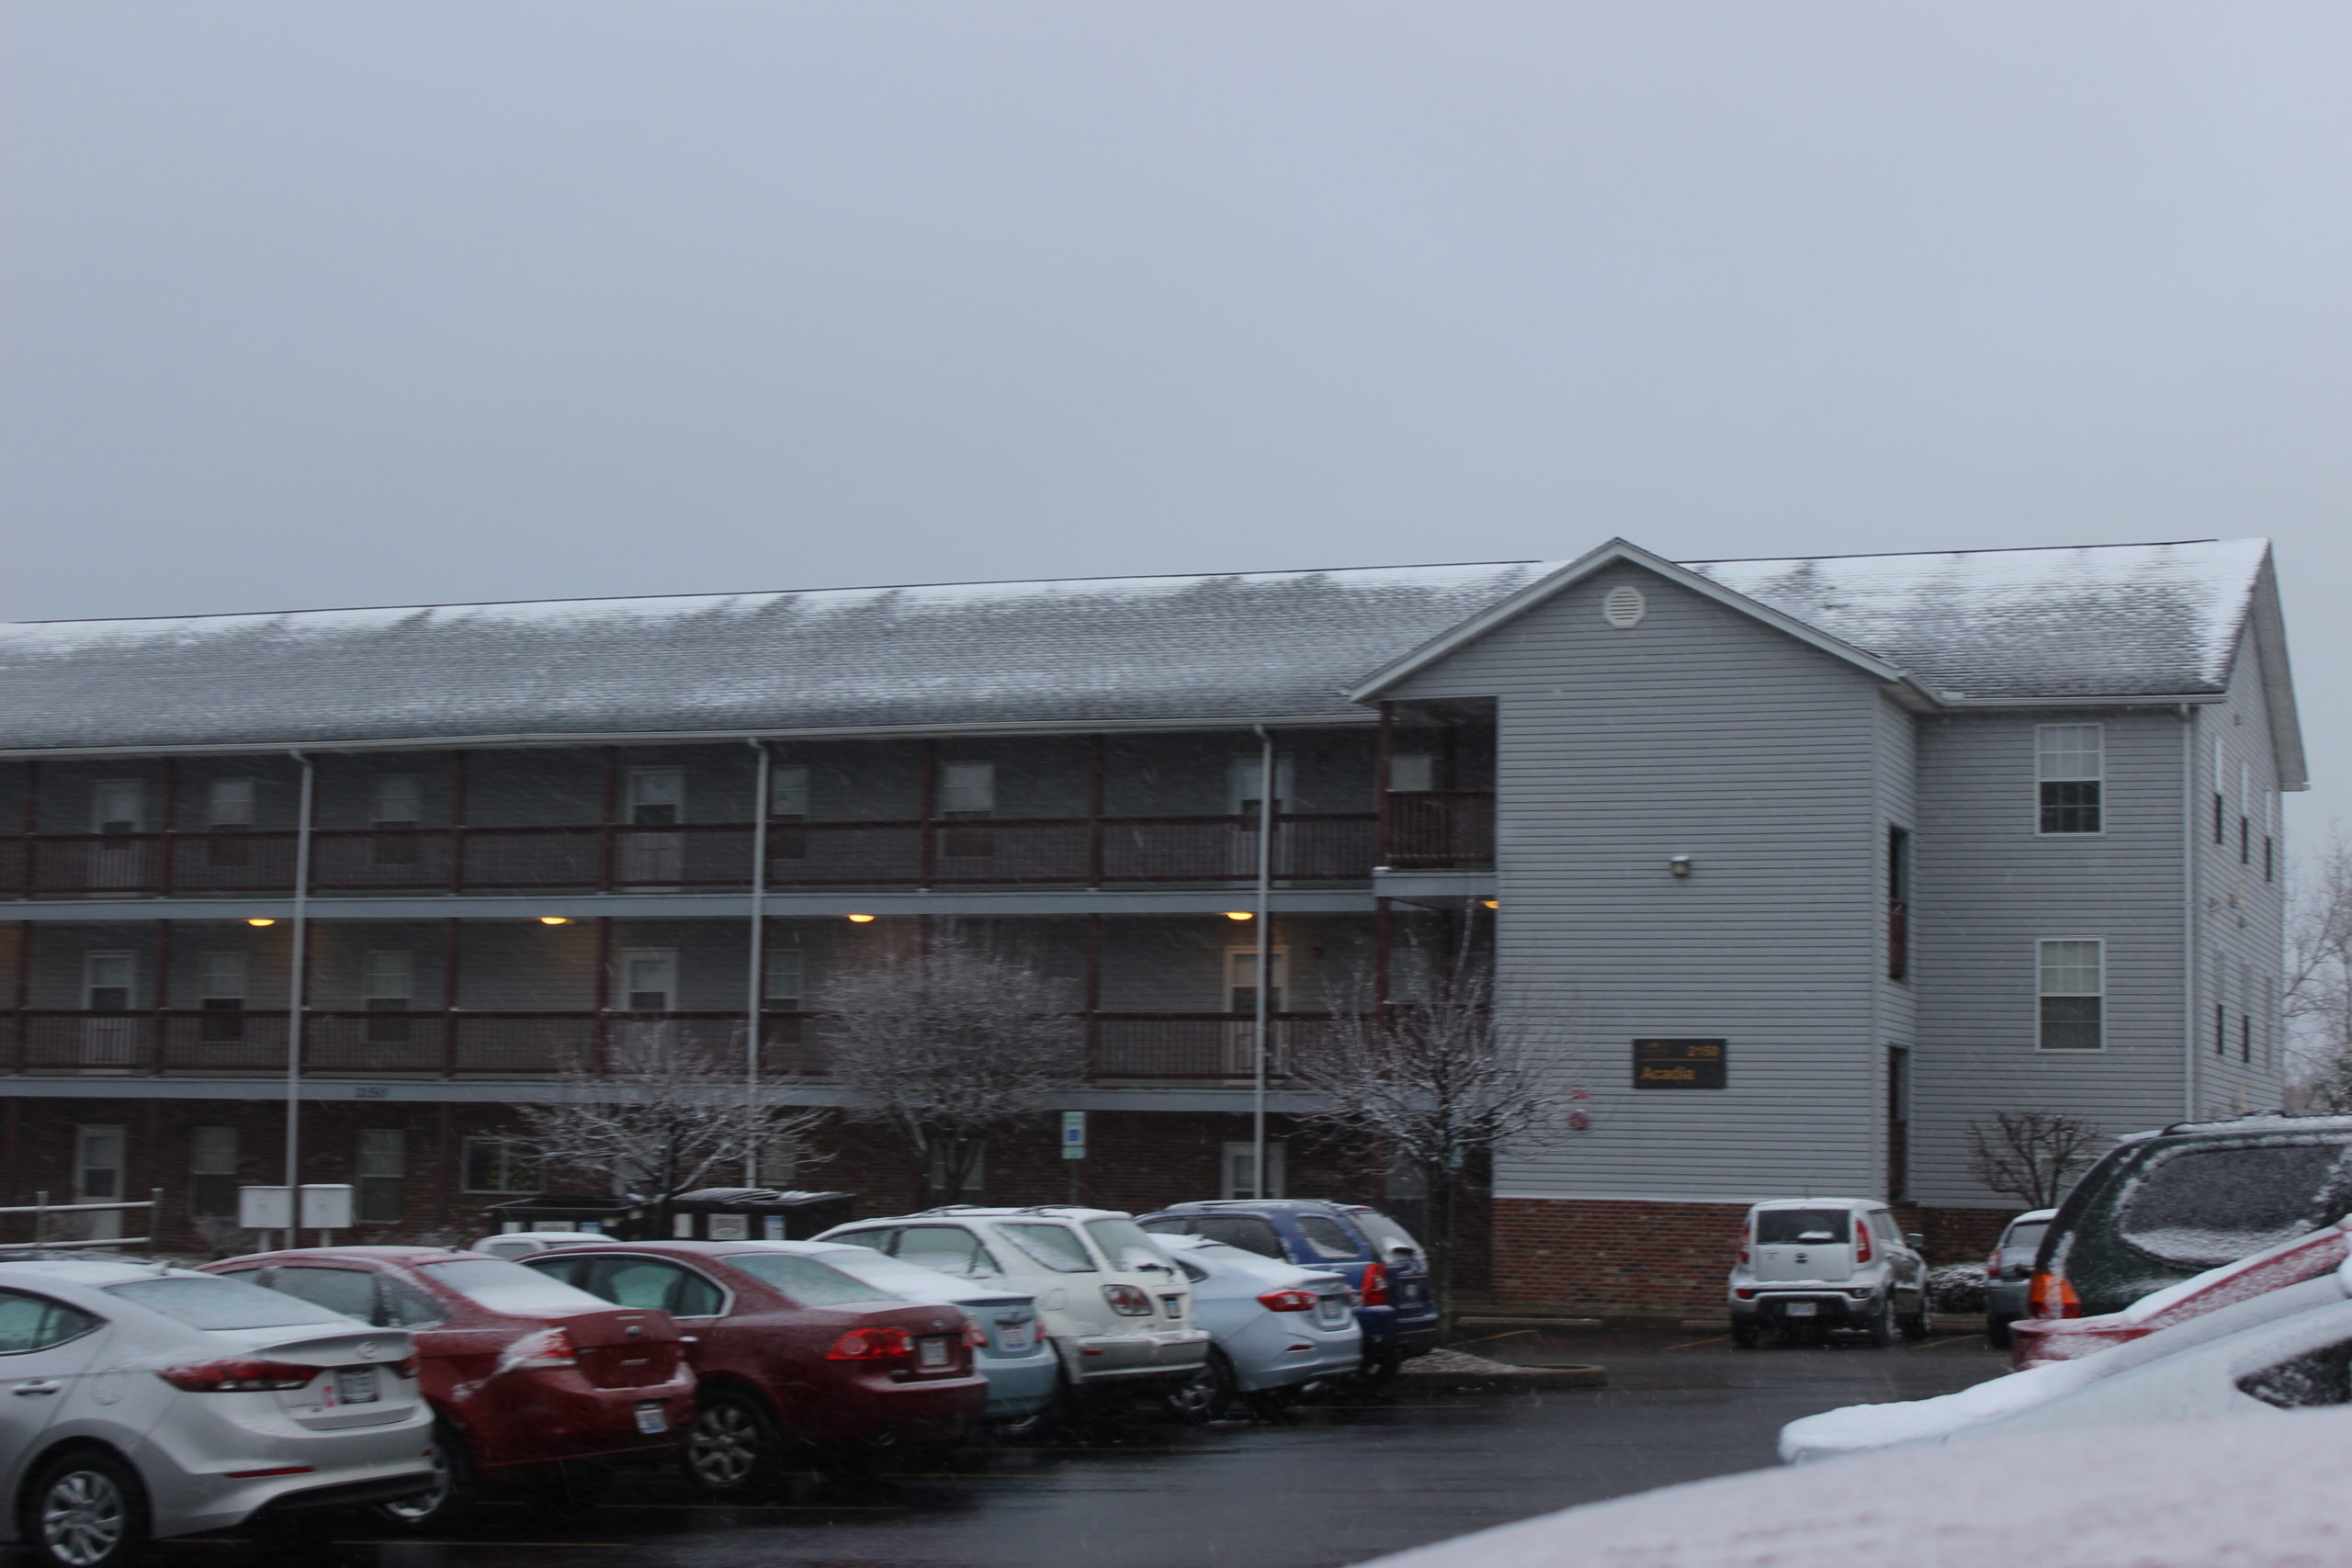 WSU on campus apartments | Photo by Daniel Delgado | The Wright State Guardian